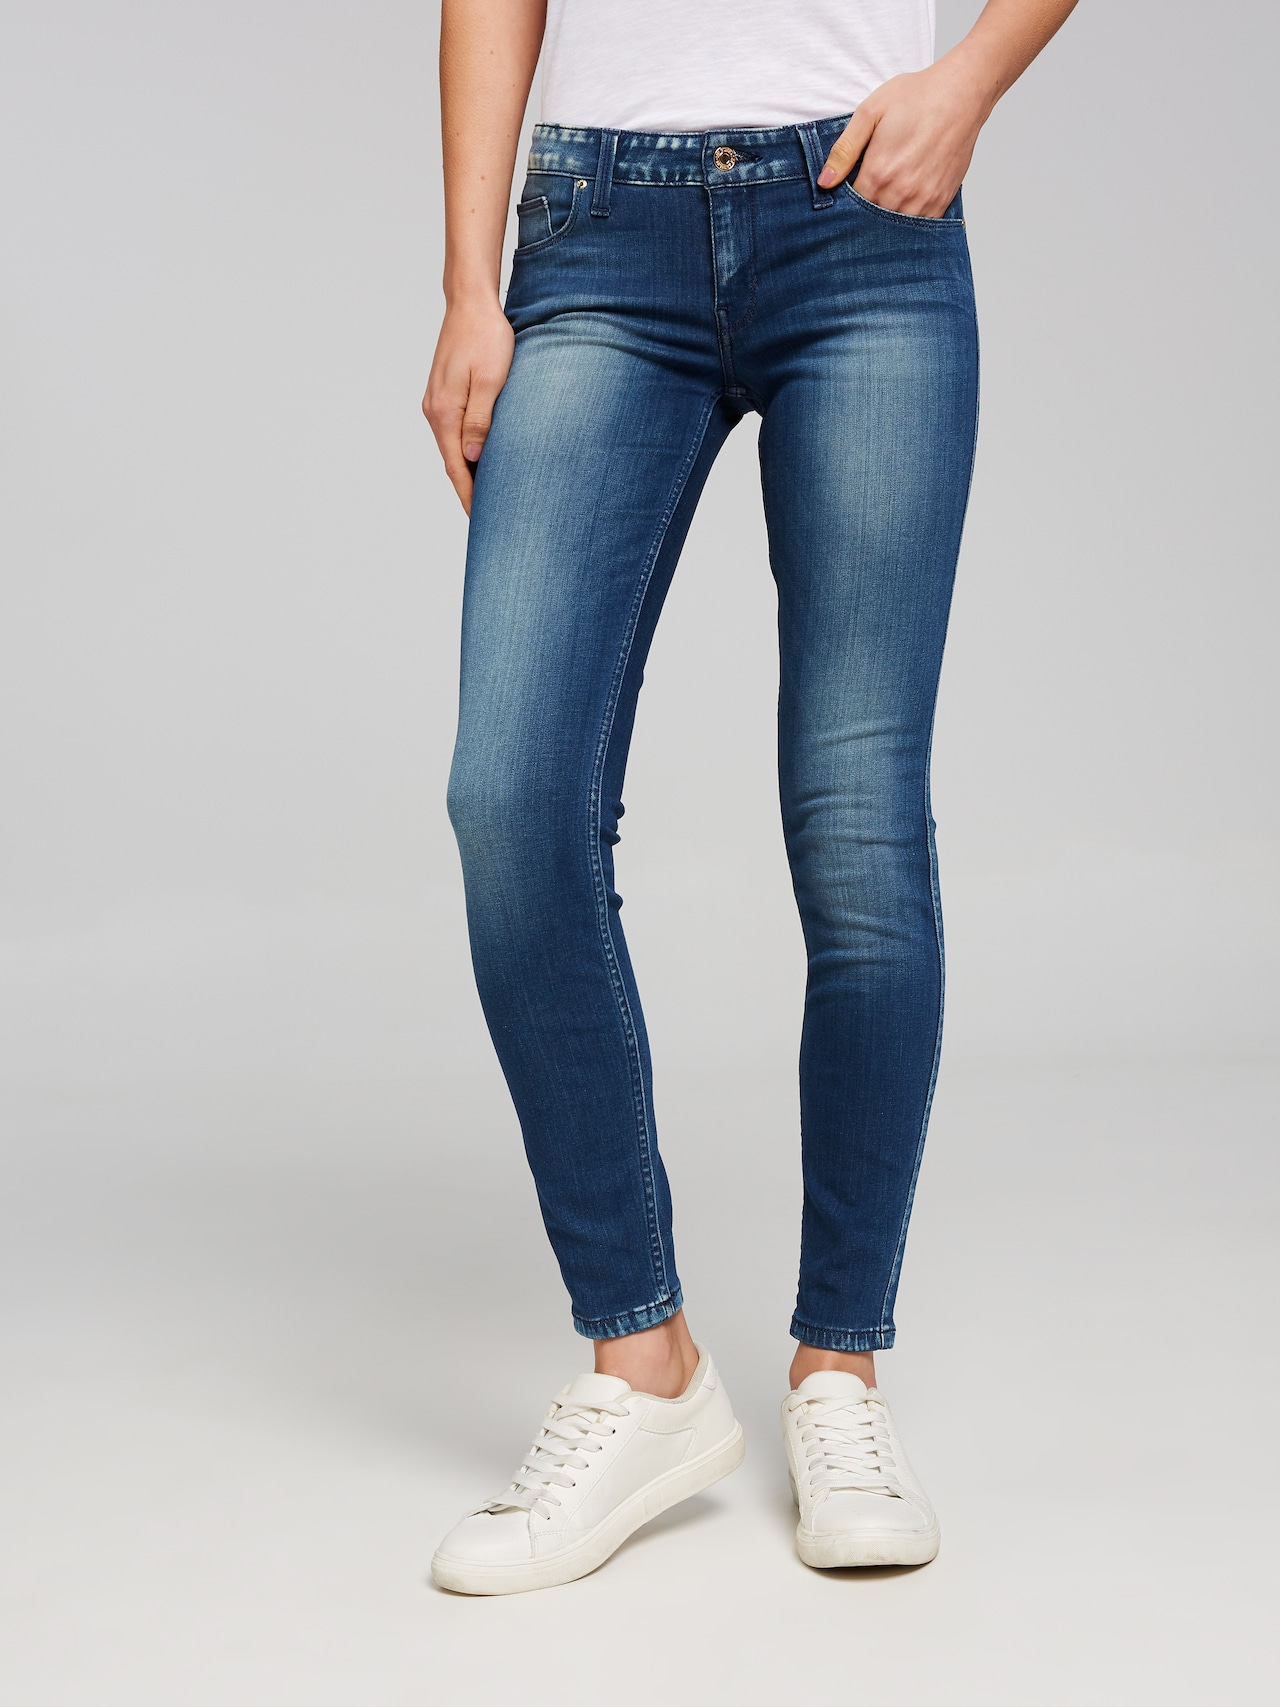 8a2301e5b Guess Mid Rise Skinny Jean In New Reller Wash - Just Jeans Online